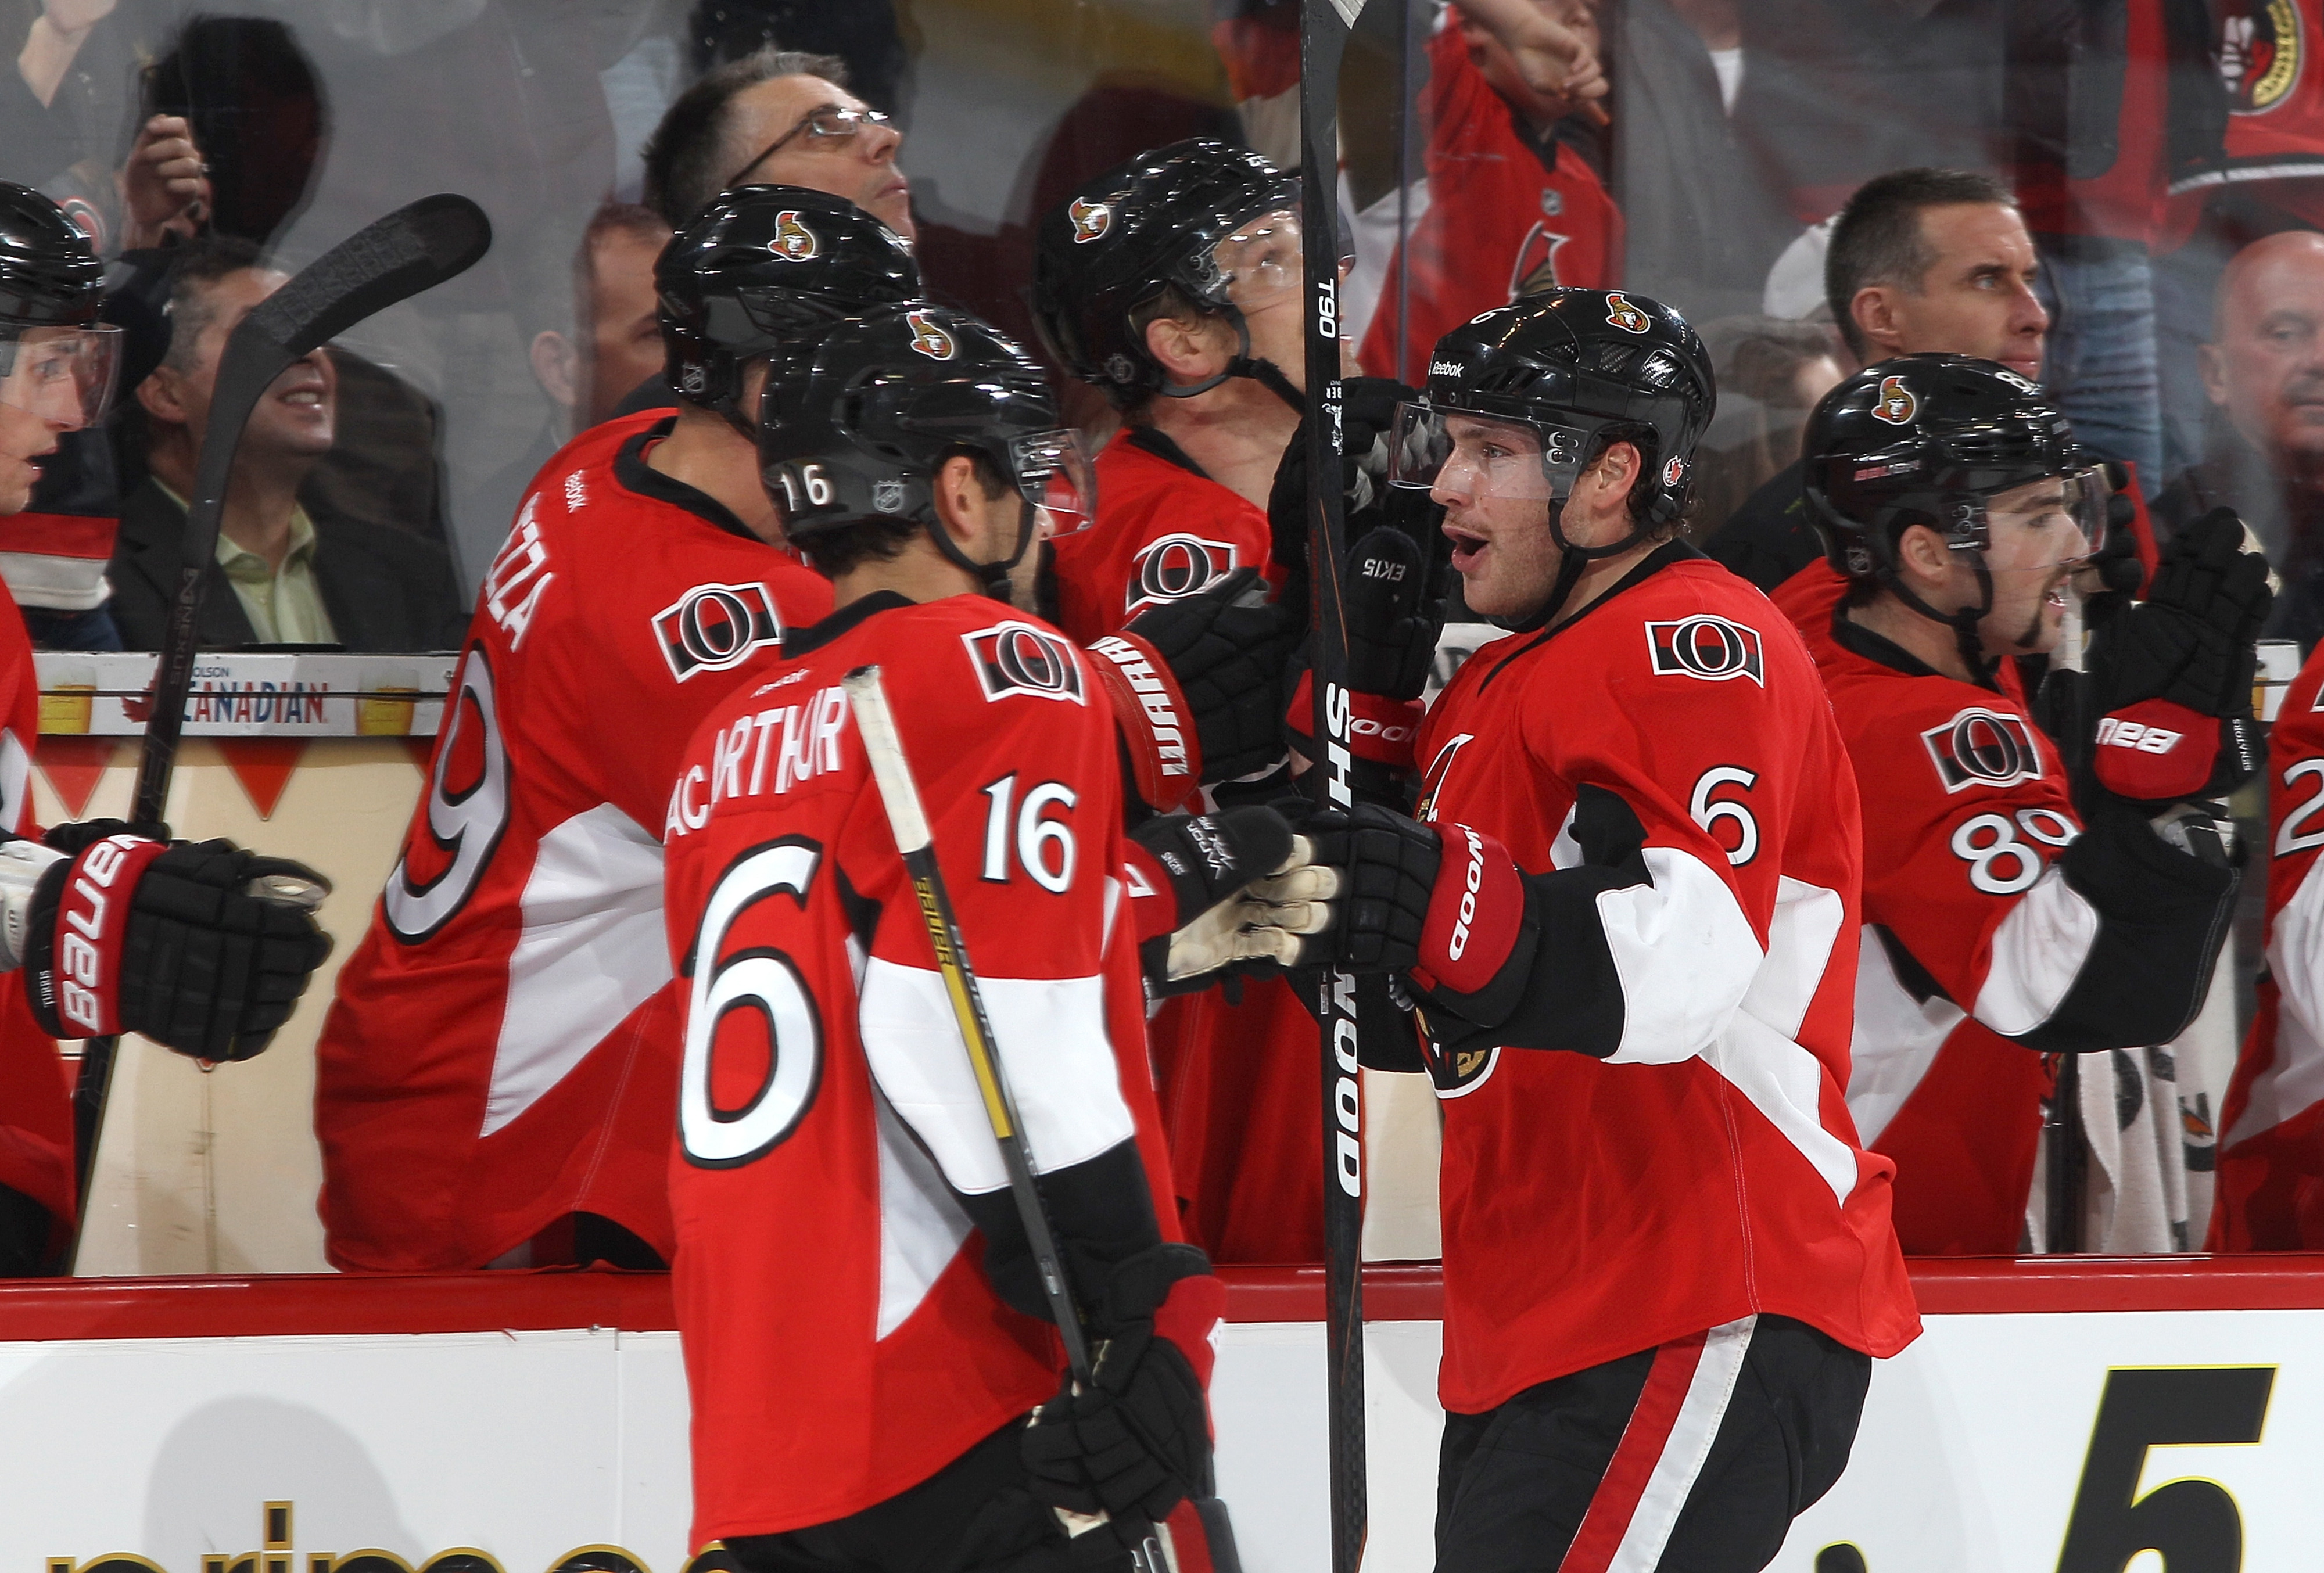 Kyle Turris is not invited to MacArthur and Ryan's Six Party.